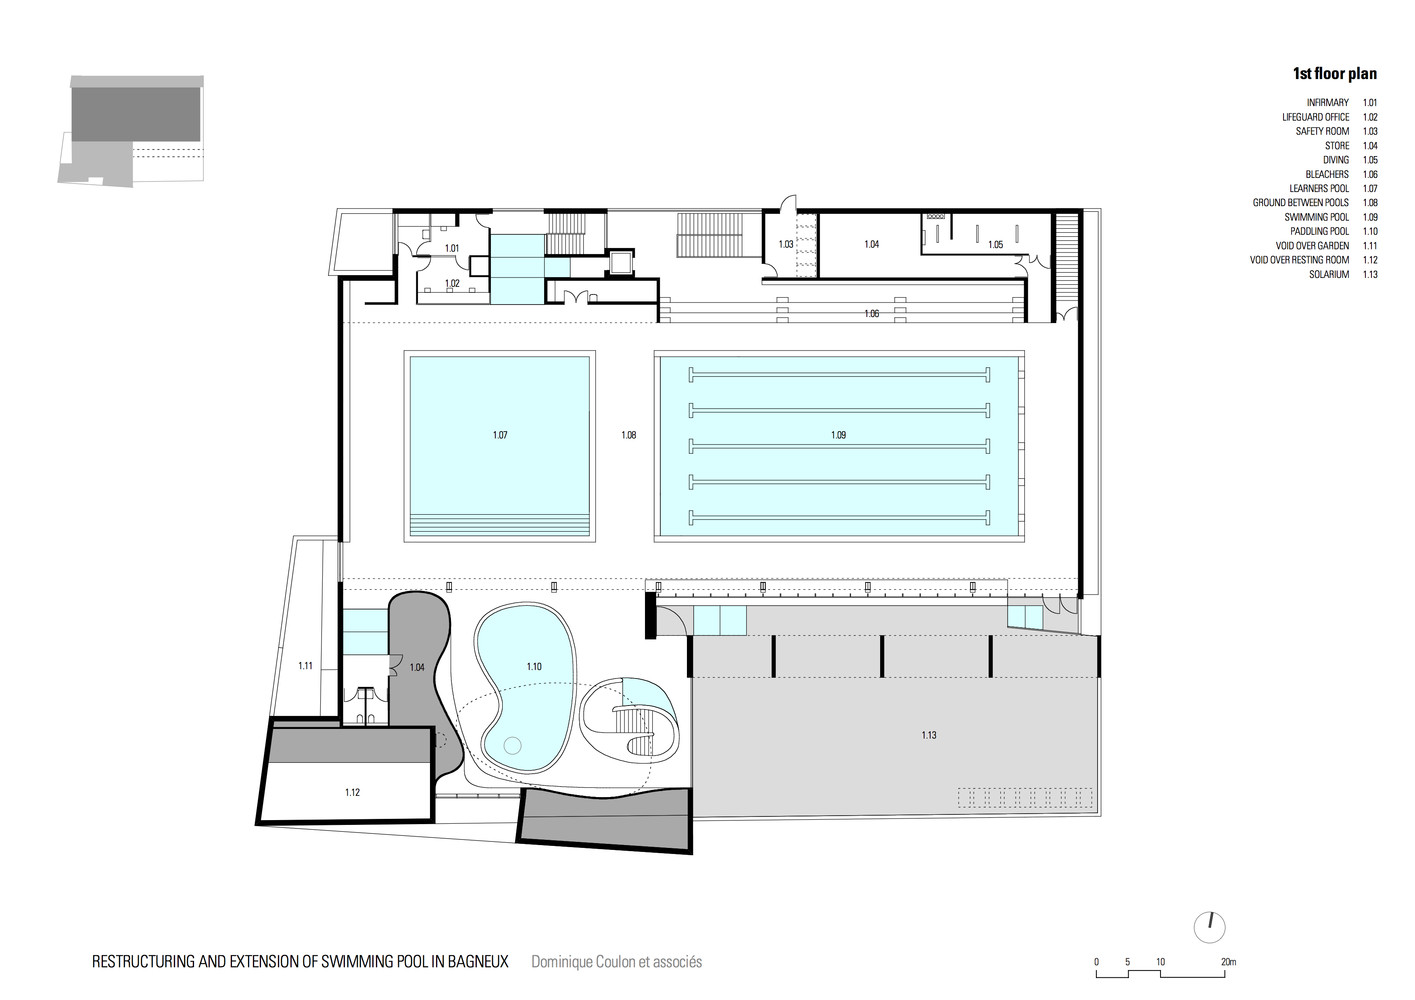 Gallery of Swimming Pool Extension in Bagneux Dominique Coulon – Swimming Pool Site Plan